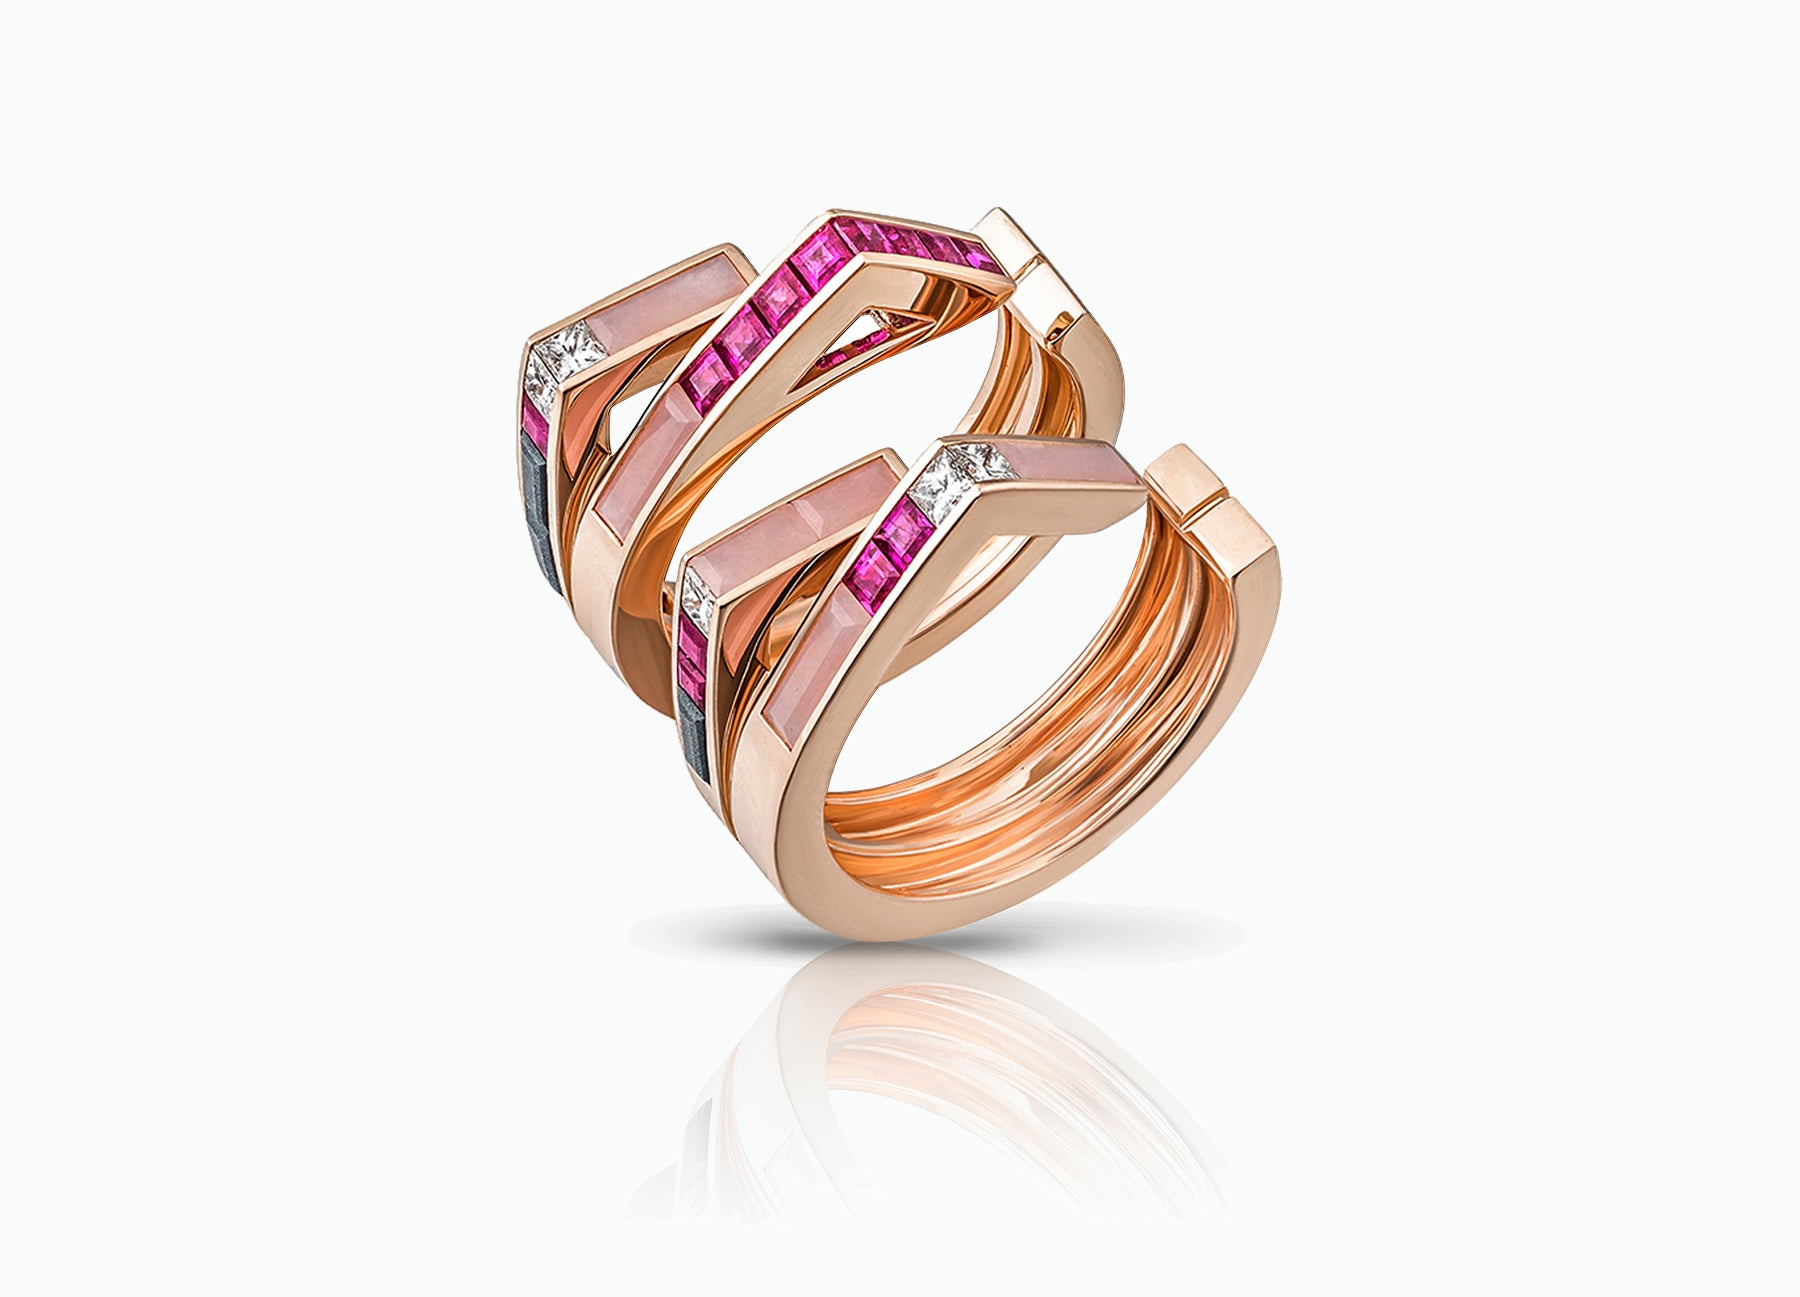 Stellar Pair of Stacking rings in 18K rose gold set with rubies and diamonds and pink opal by Tomasz Donocik Seen apart three quarter view